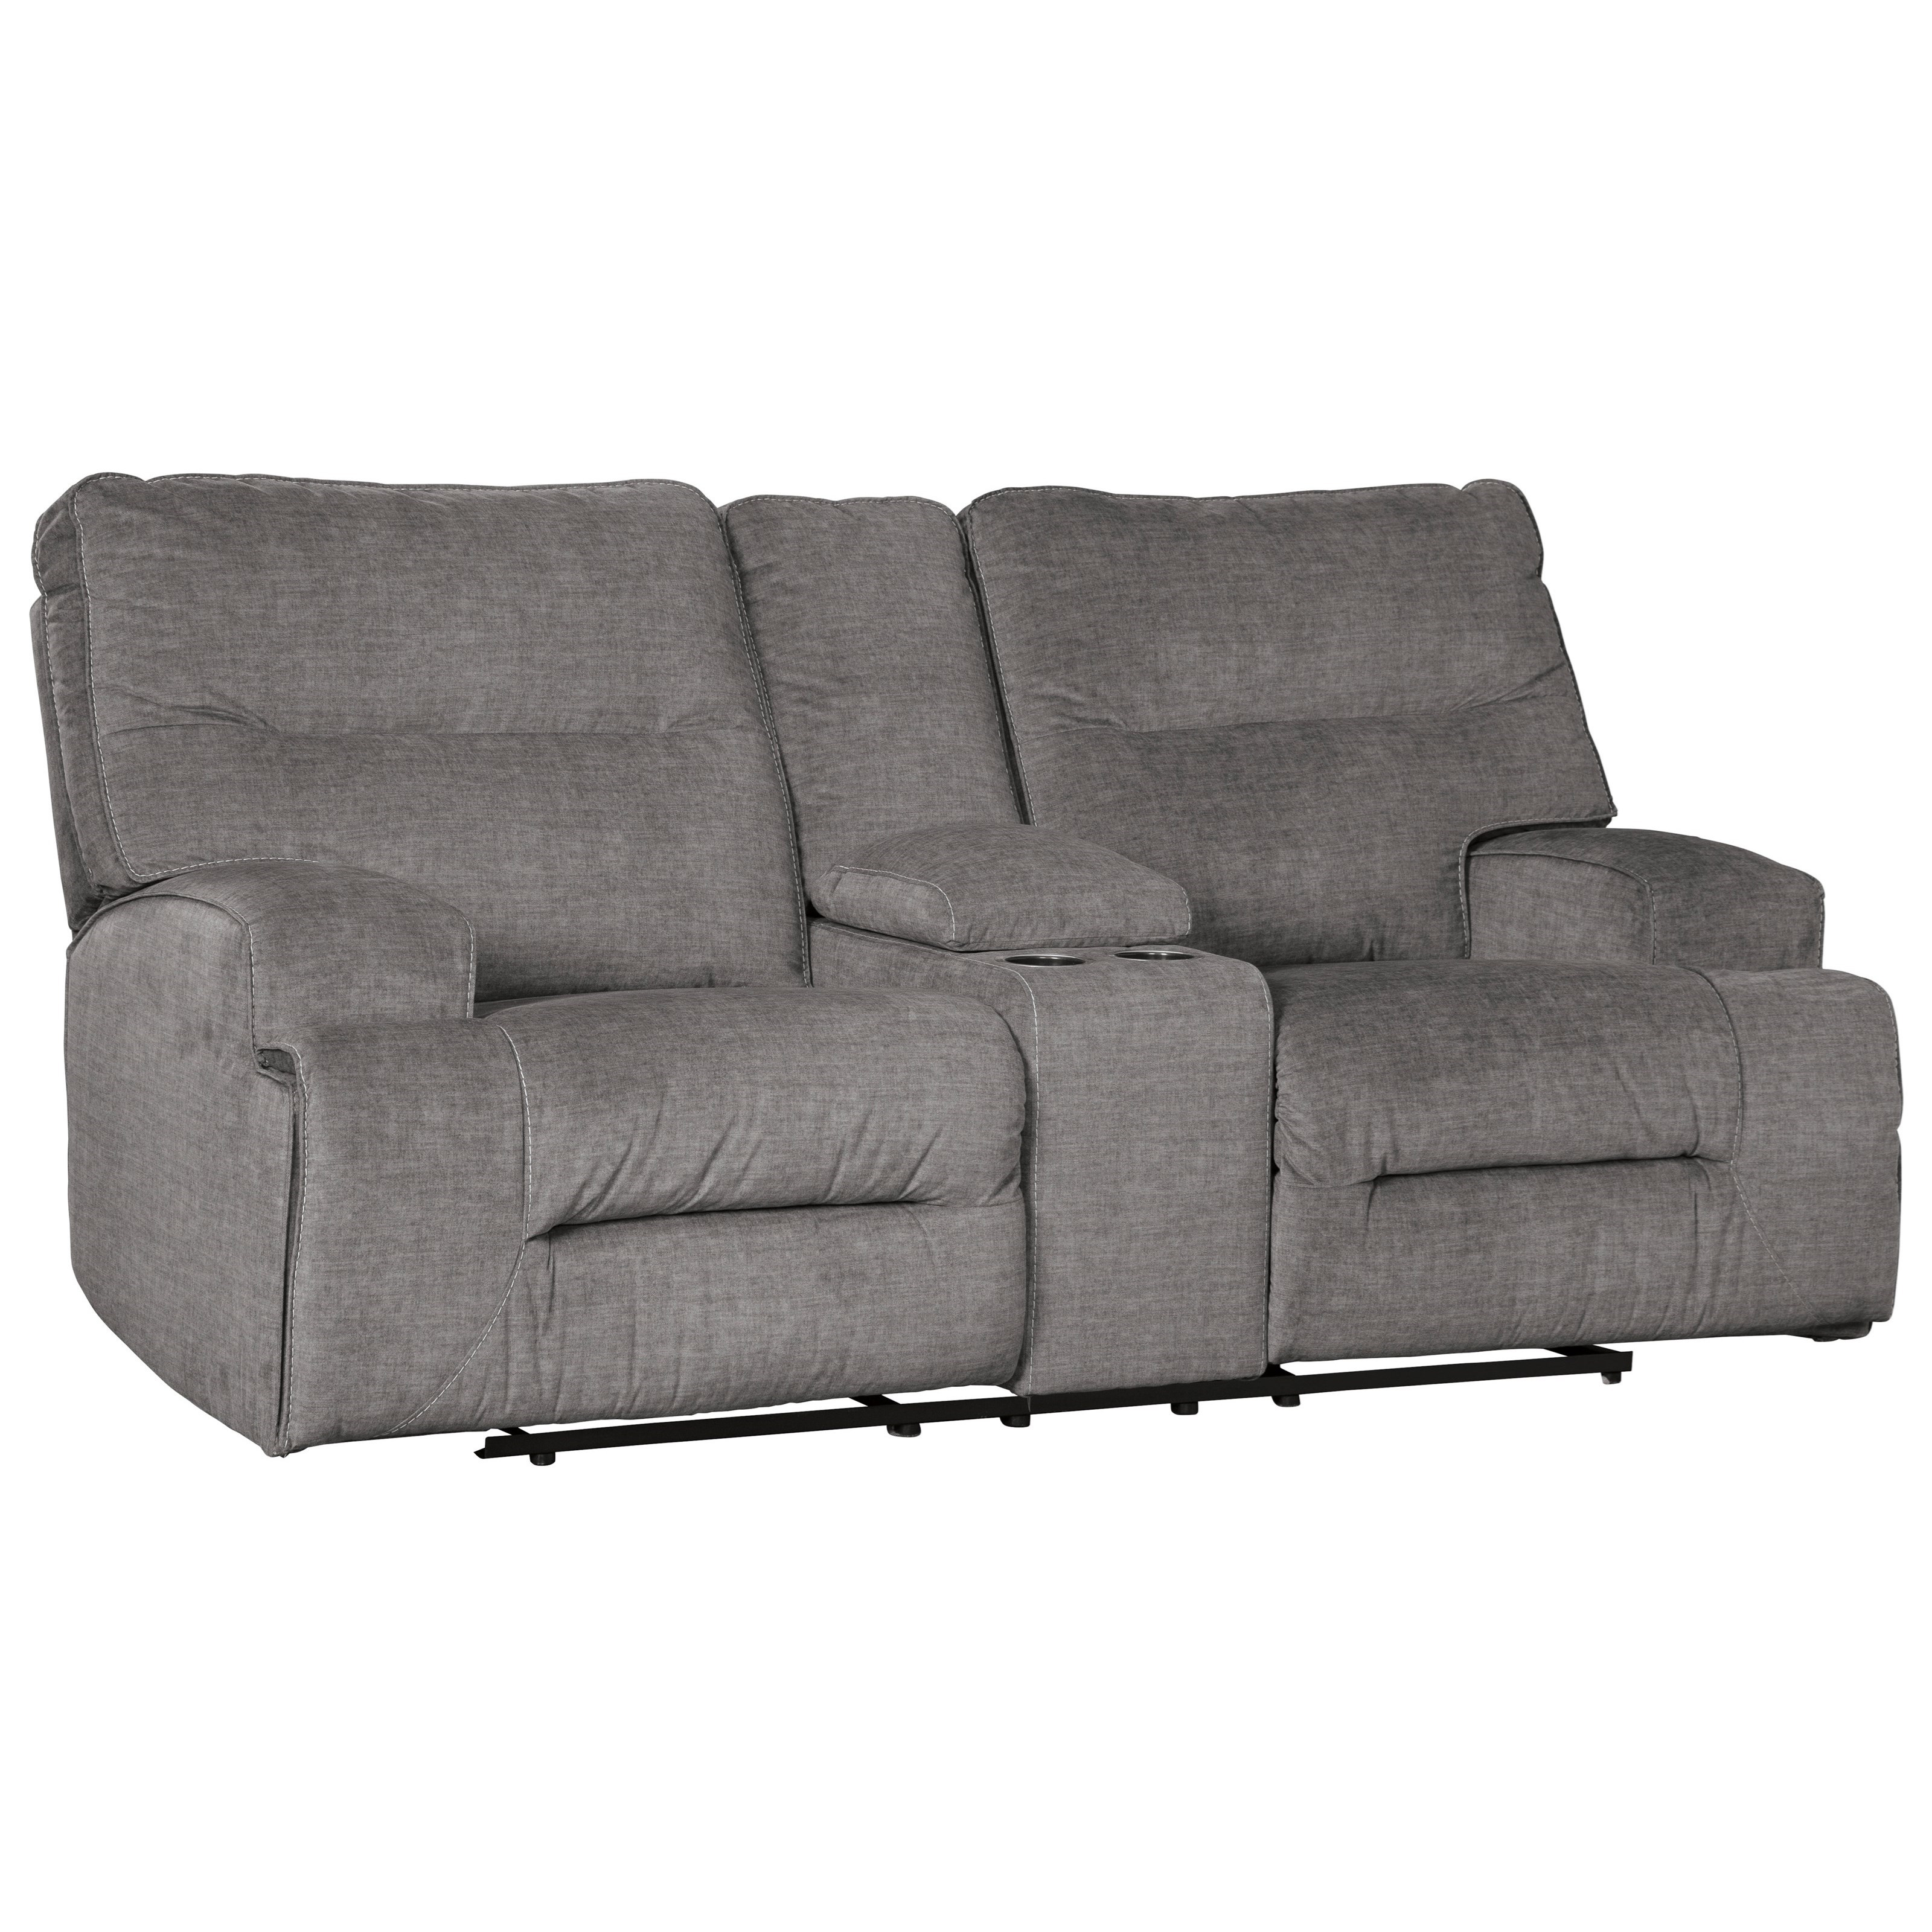 Coombs Double Reclining Loveseat w/ Console by Benchcraft at Miller Waldrop Furniture and Decor